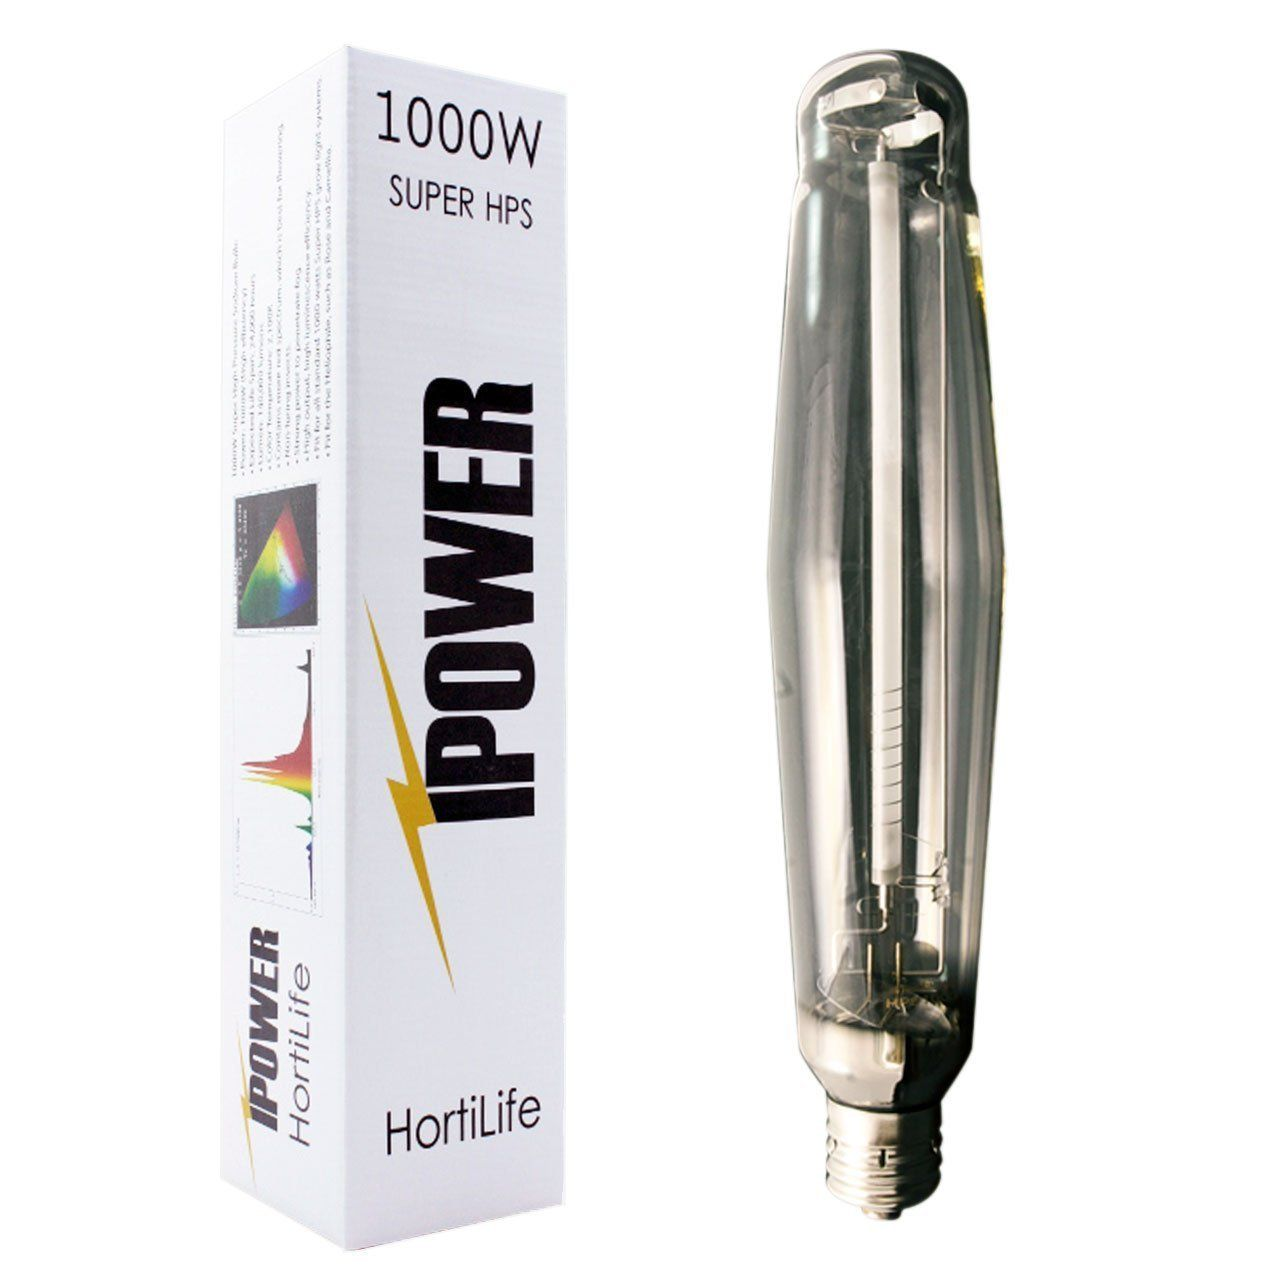 Ipower 1000 Watt High Pressure Sodium Hps Grow Light Bulb Lamp High Par Enhanced Red And Orange Spectrums Cct Grow Light Bulbs Hps Grow Lights Light Bulb Lamp